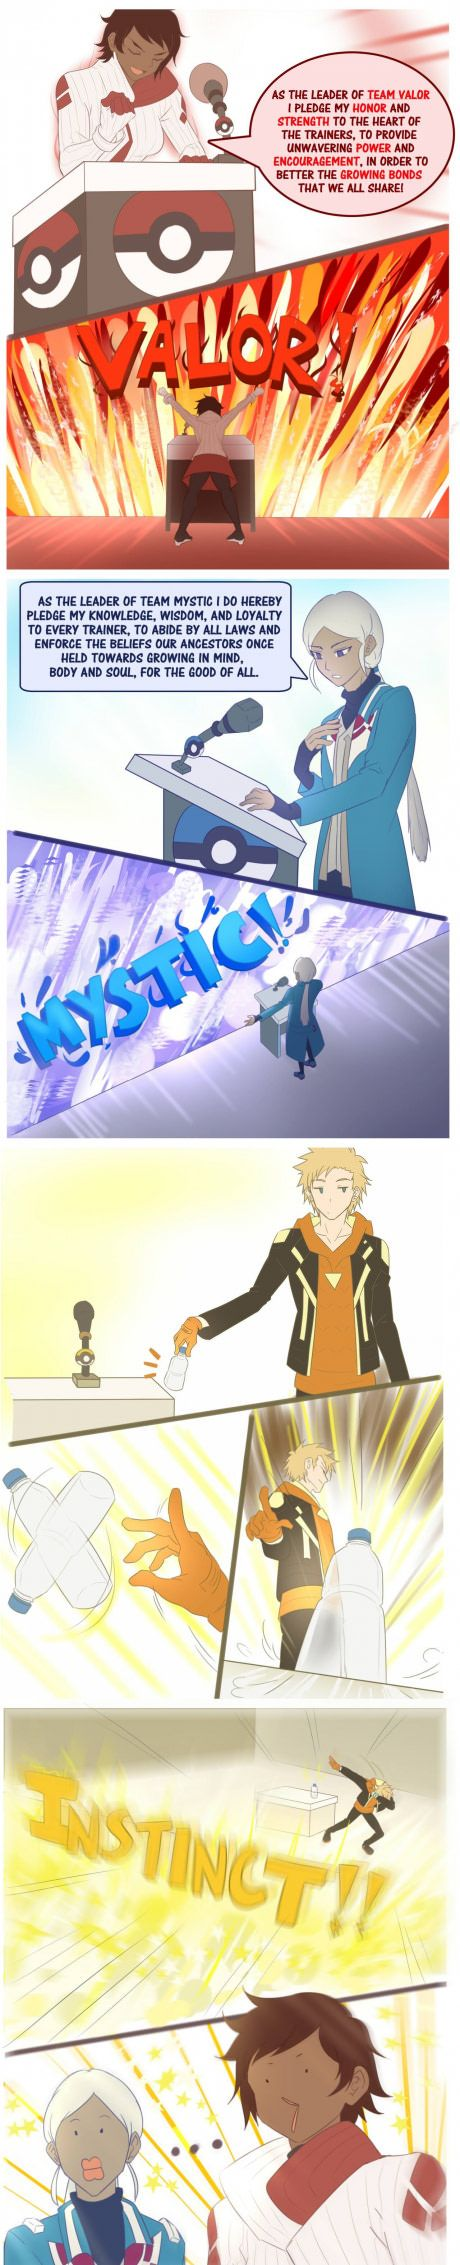 Make Your Choice...> know wonder my brother choose instinct.. he can flip bottles and I can't D: